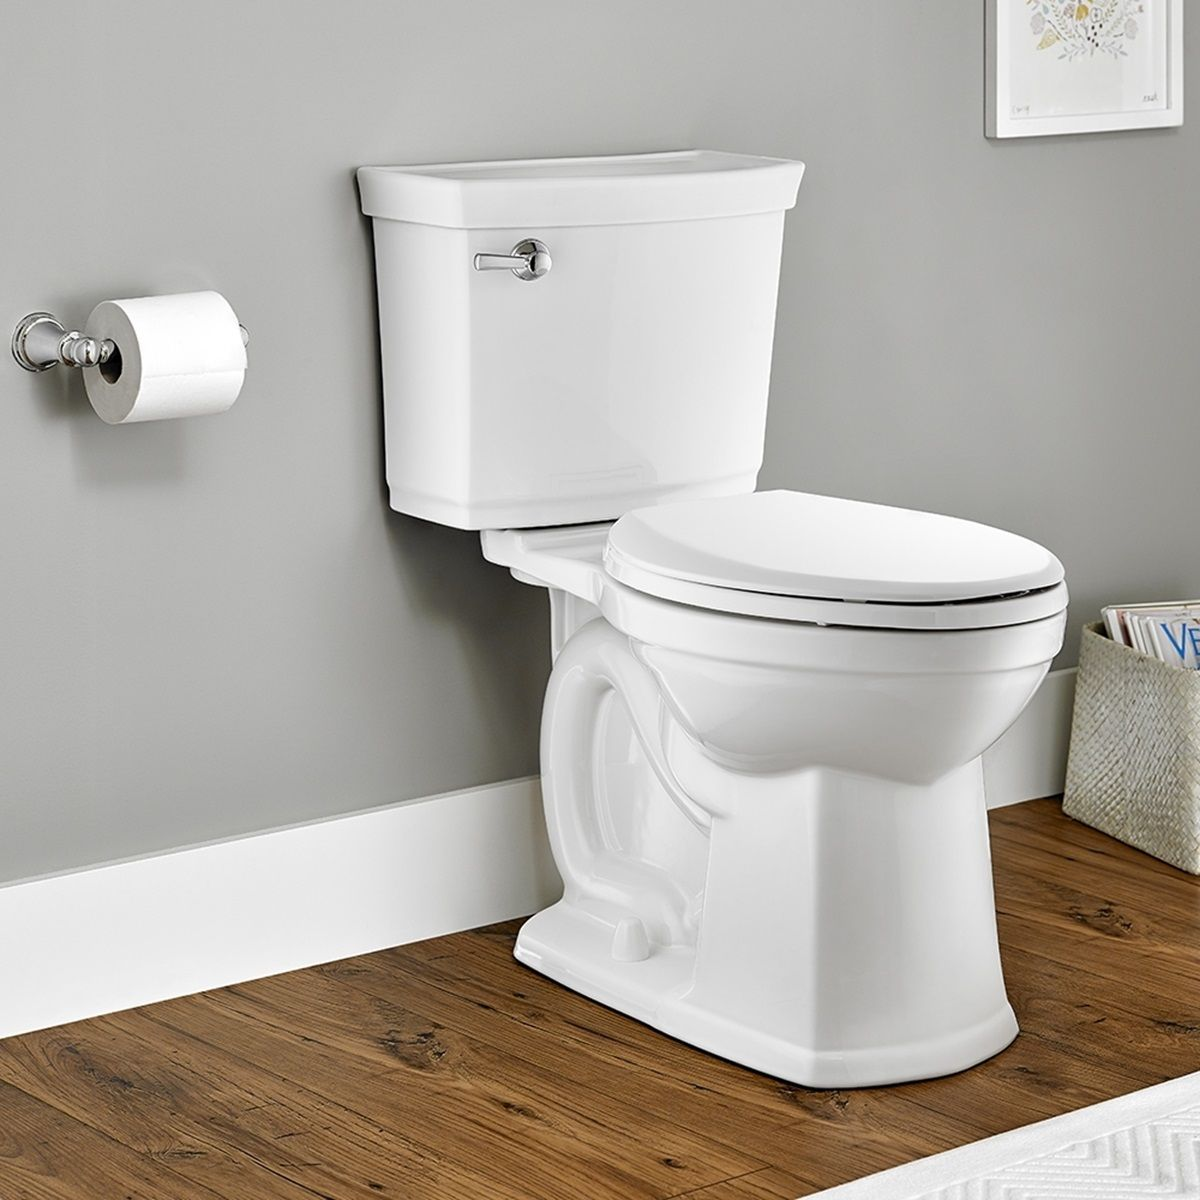 ultima vormax toilet | Bathroom | Pinterest | Toilet, American ...